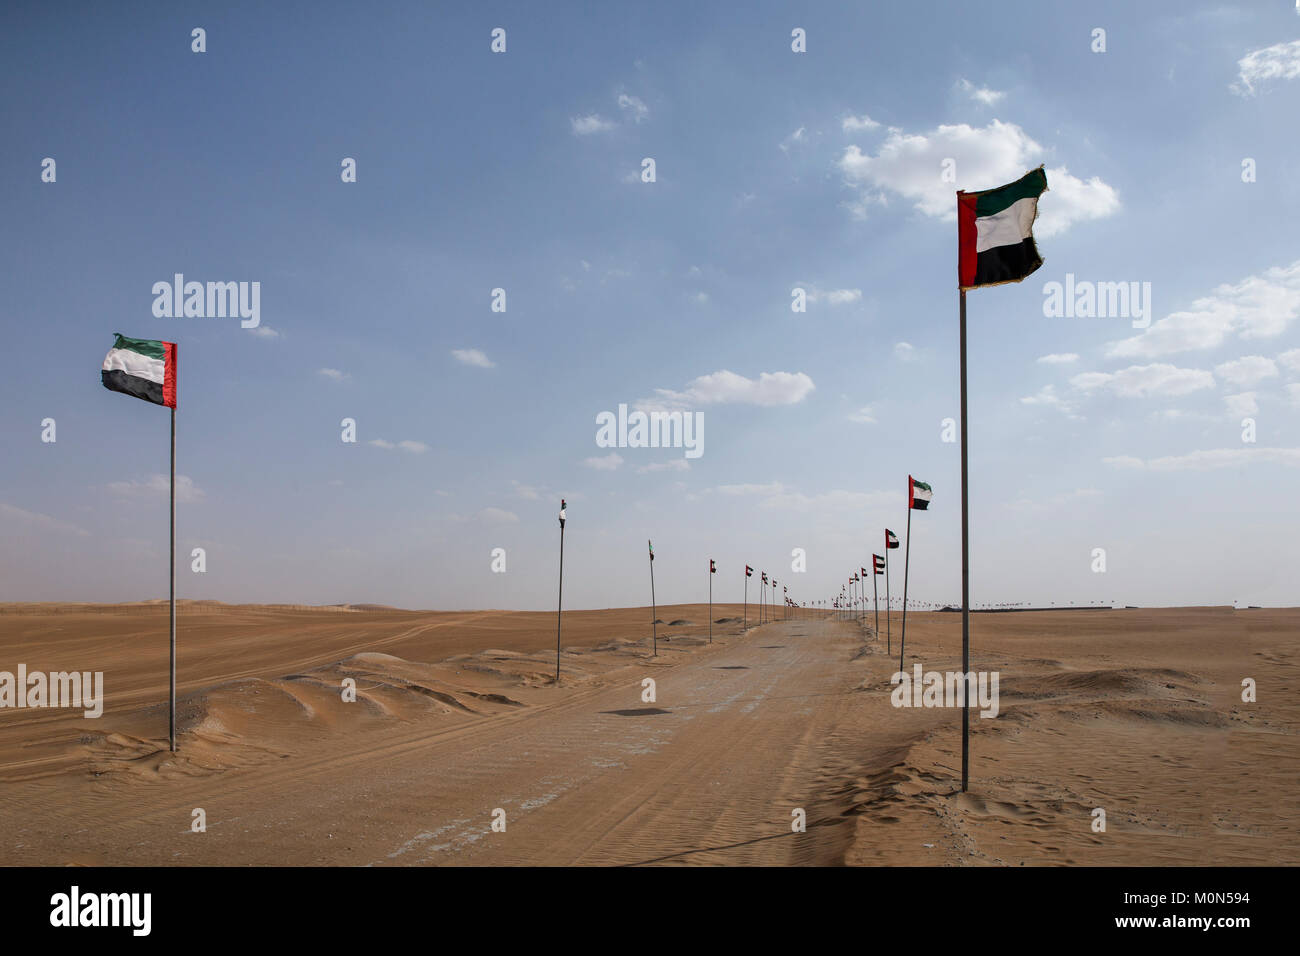 UAE flags lining a road in a desert Stock Photo